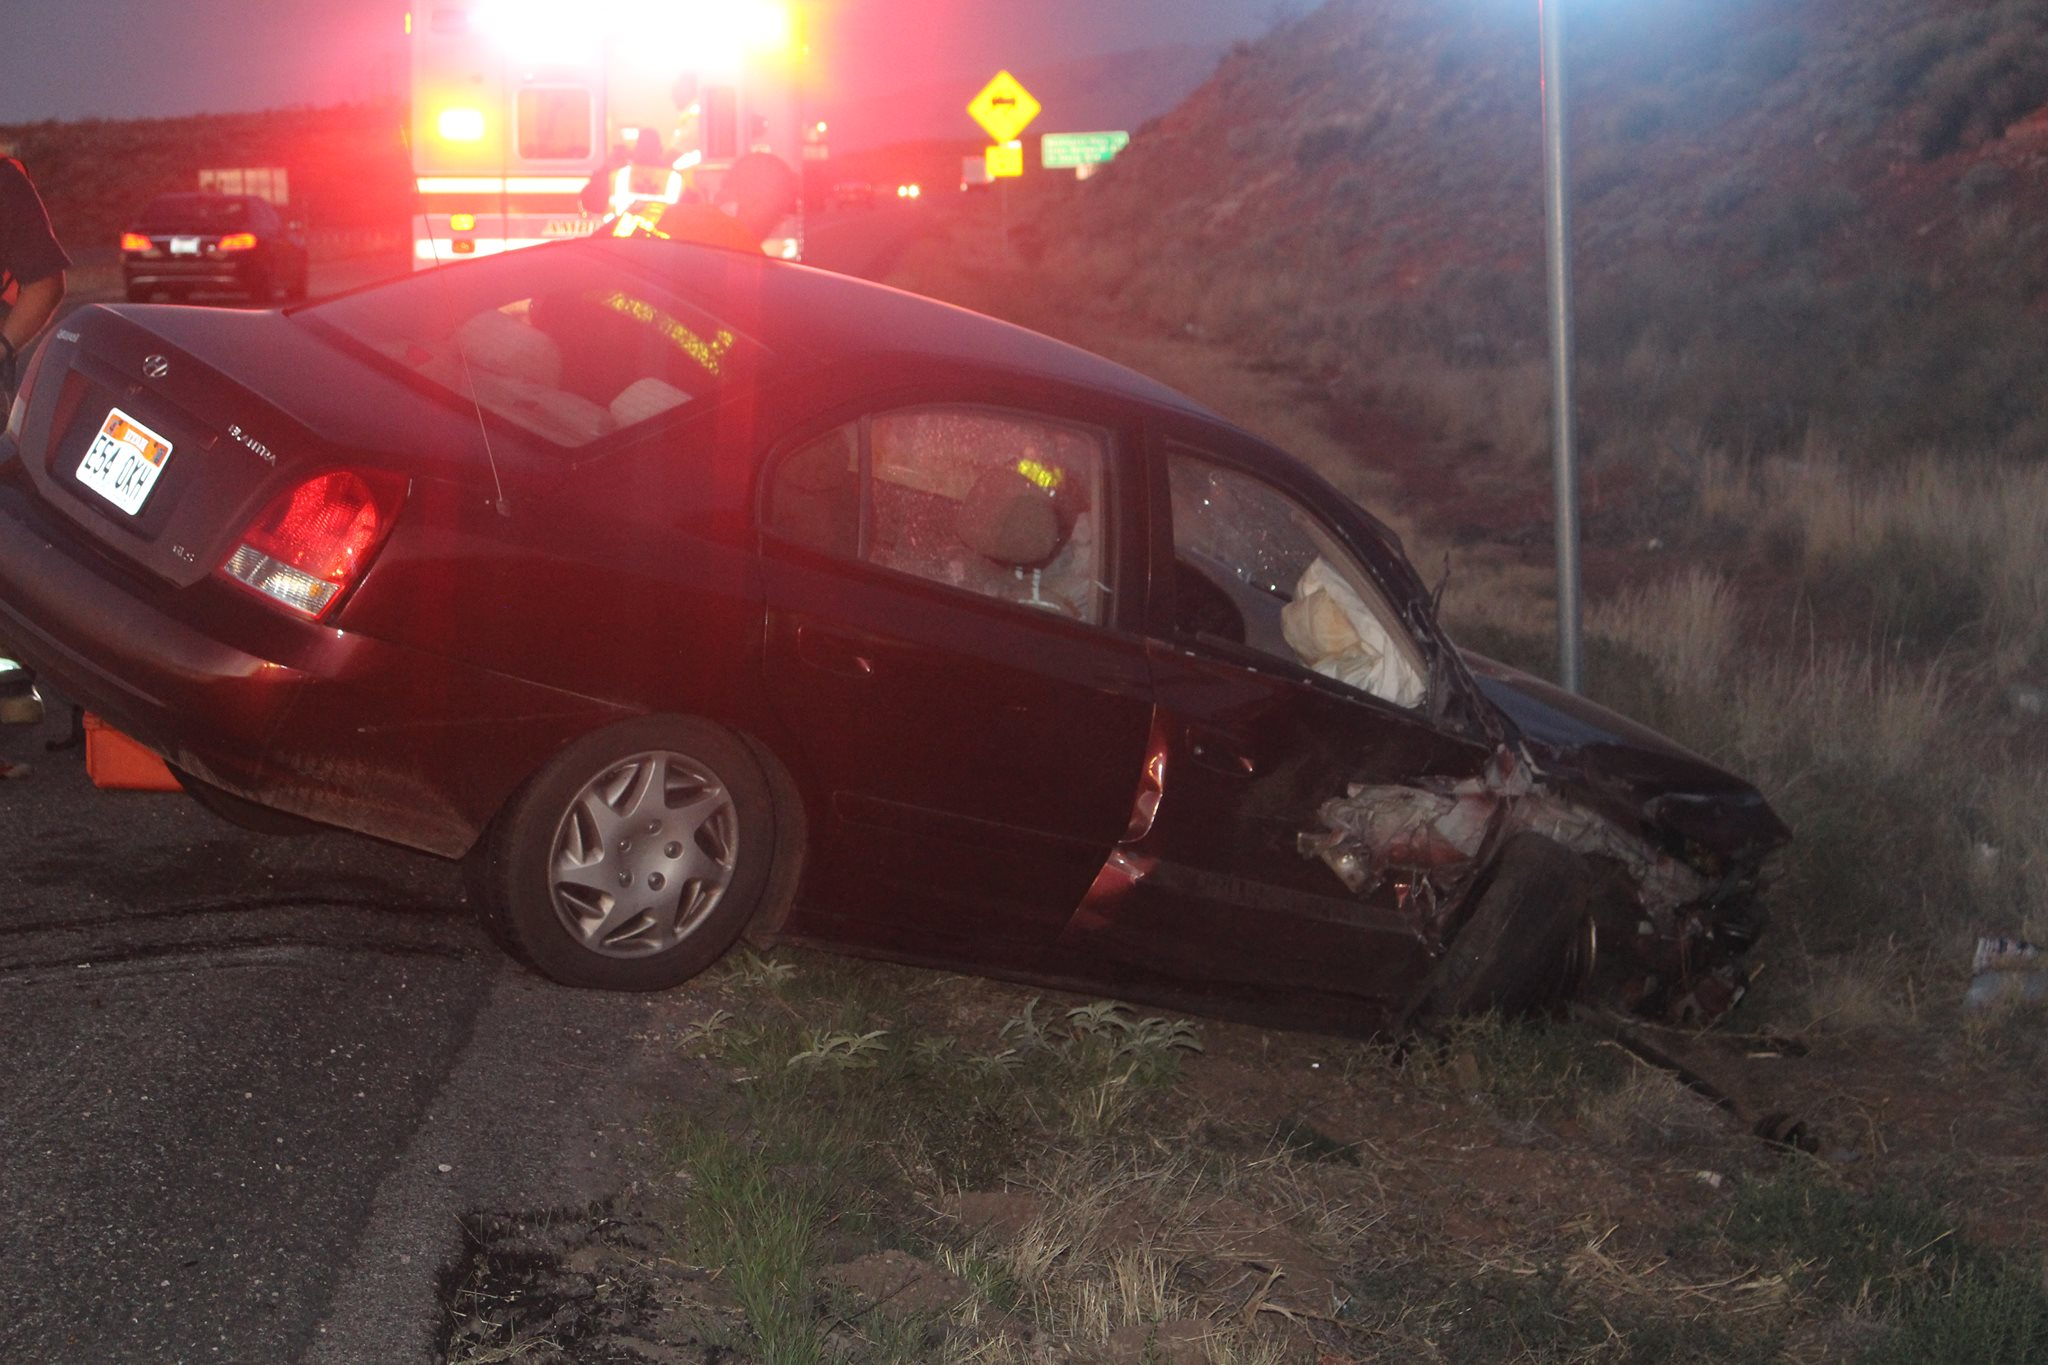 A red Hyundai sits node down into the ditch next to I-15 by the Hurricane exit after a wreck involving a parked minivan. Washington, Utah, October 15, 2016 | Photo by Ric Wayman, St. George News